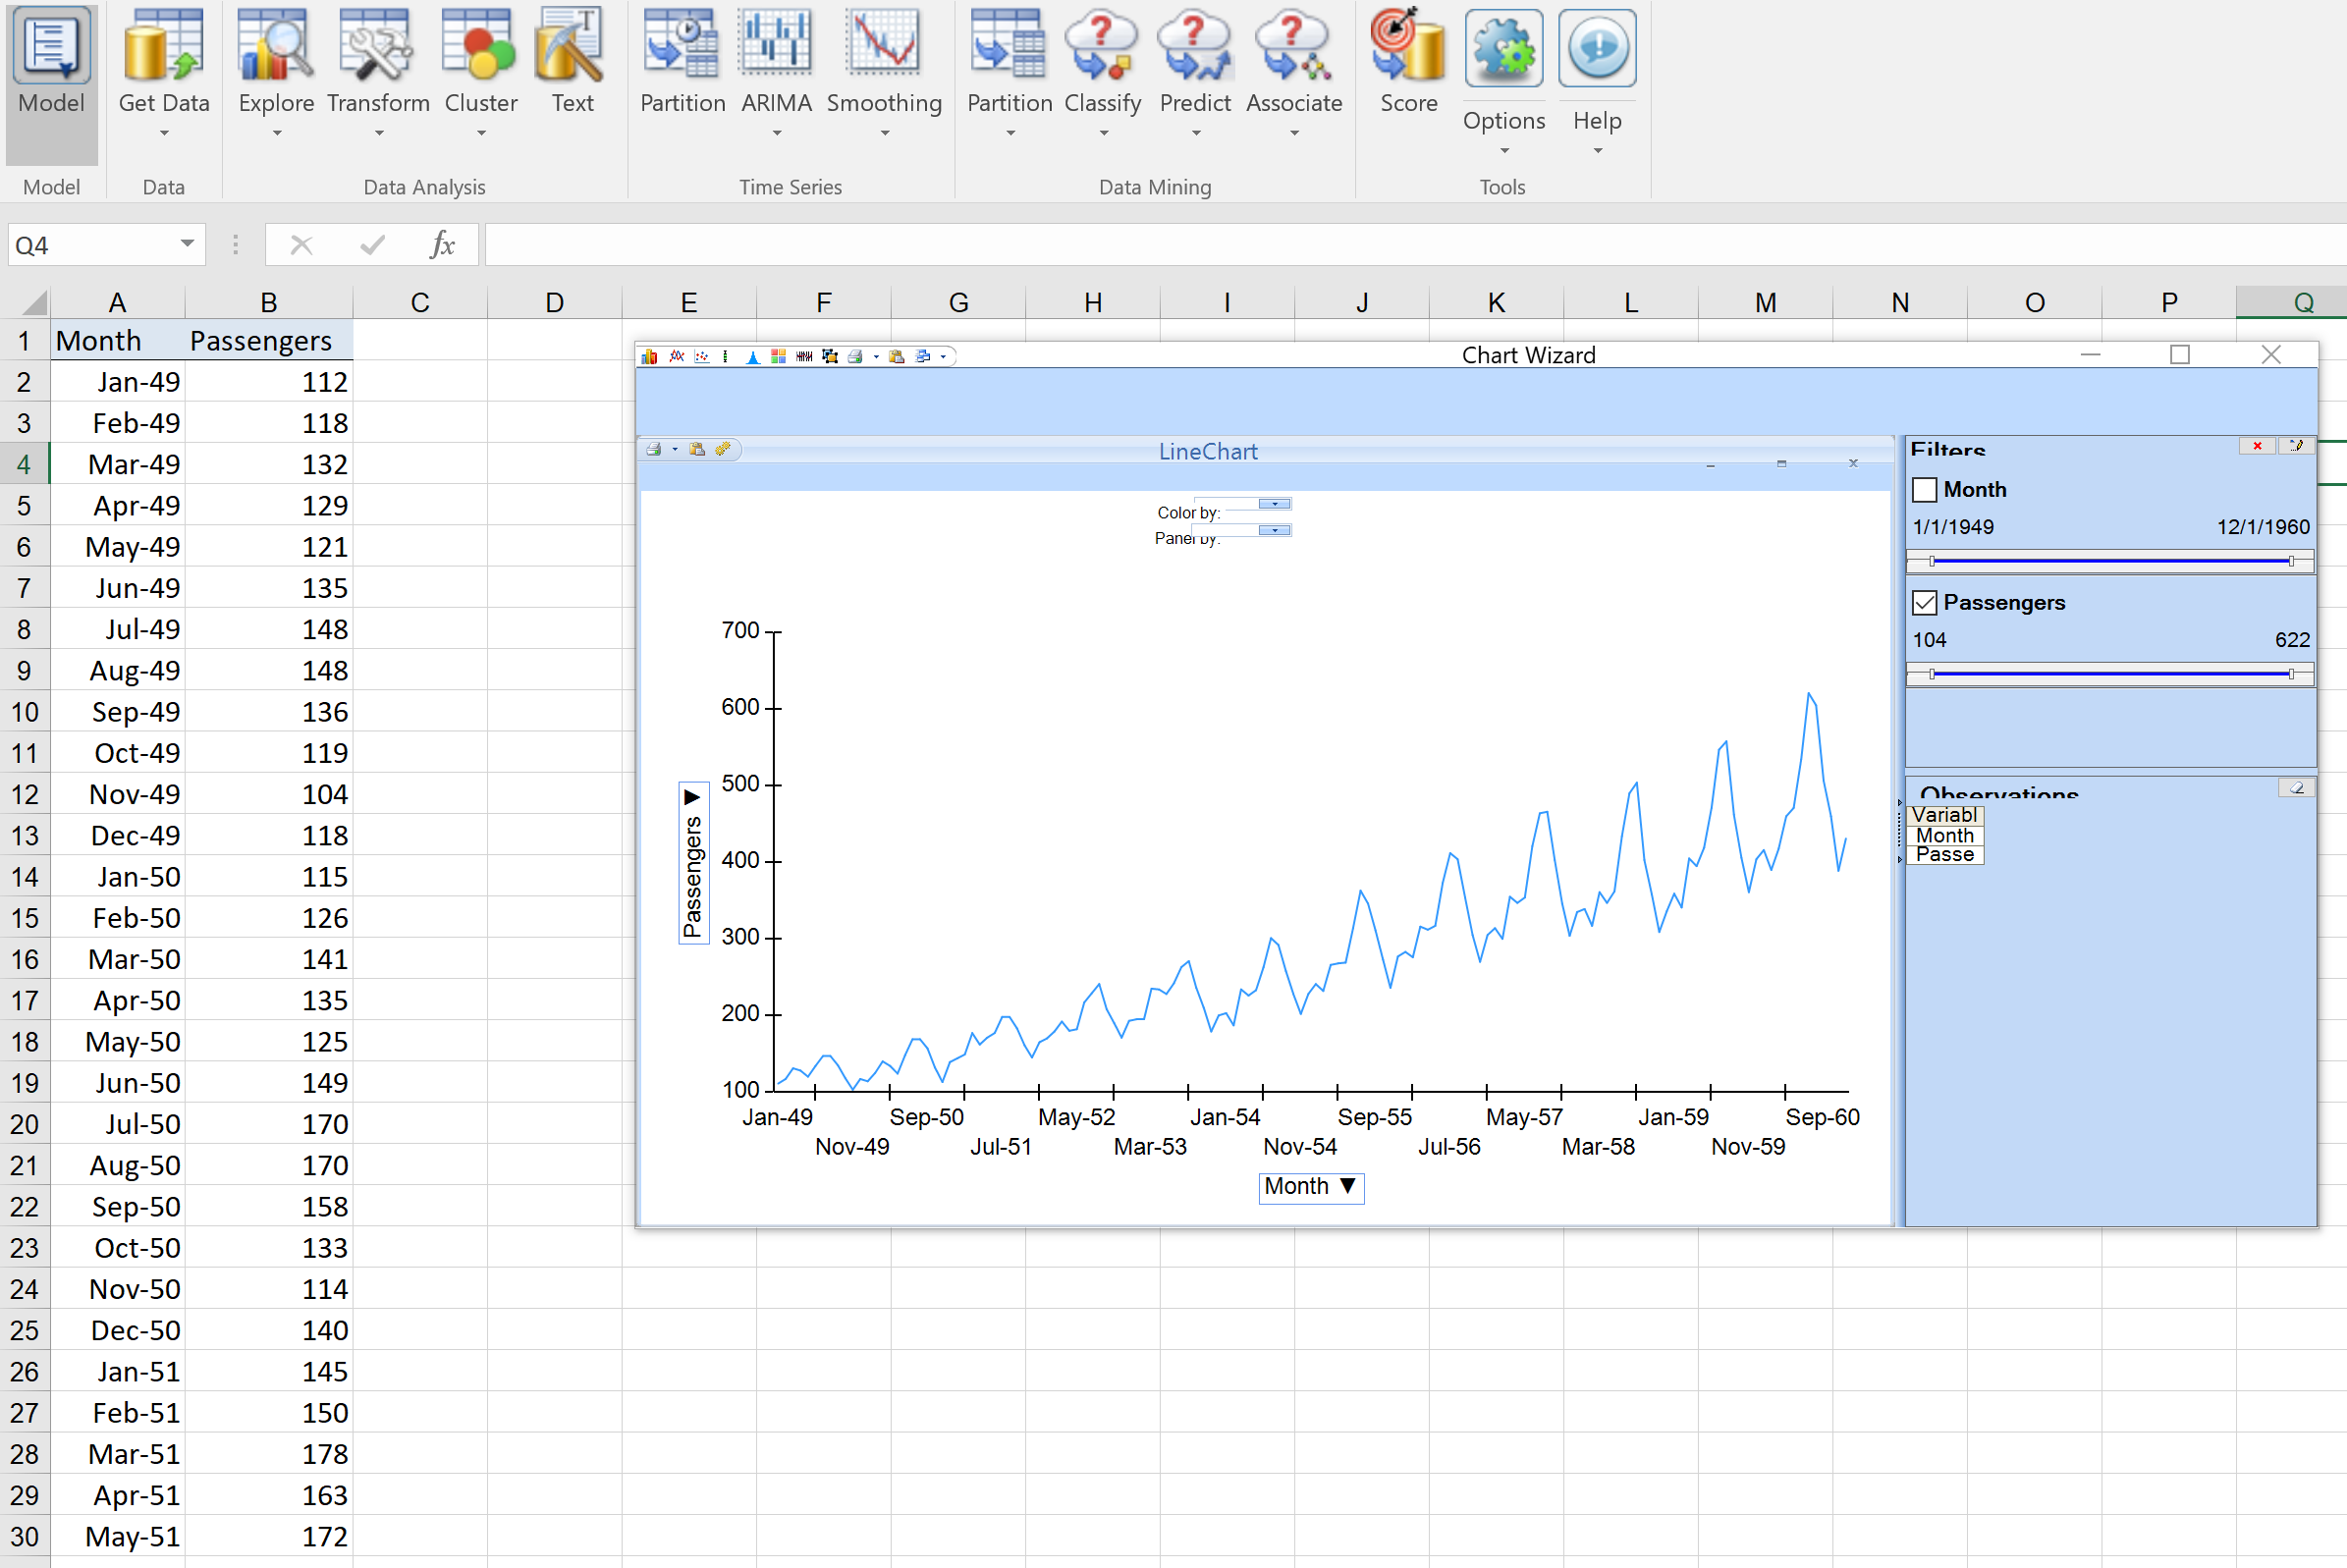 Data Mining 201 using Analytic Solver DM201